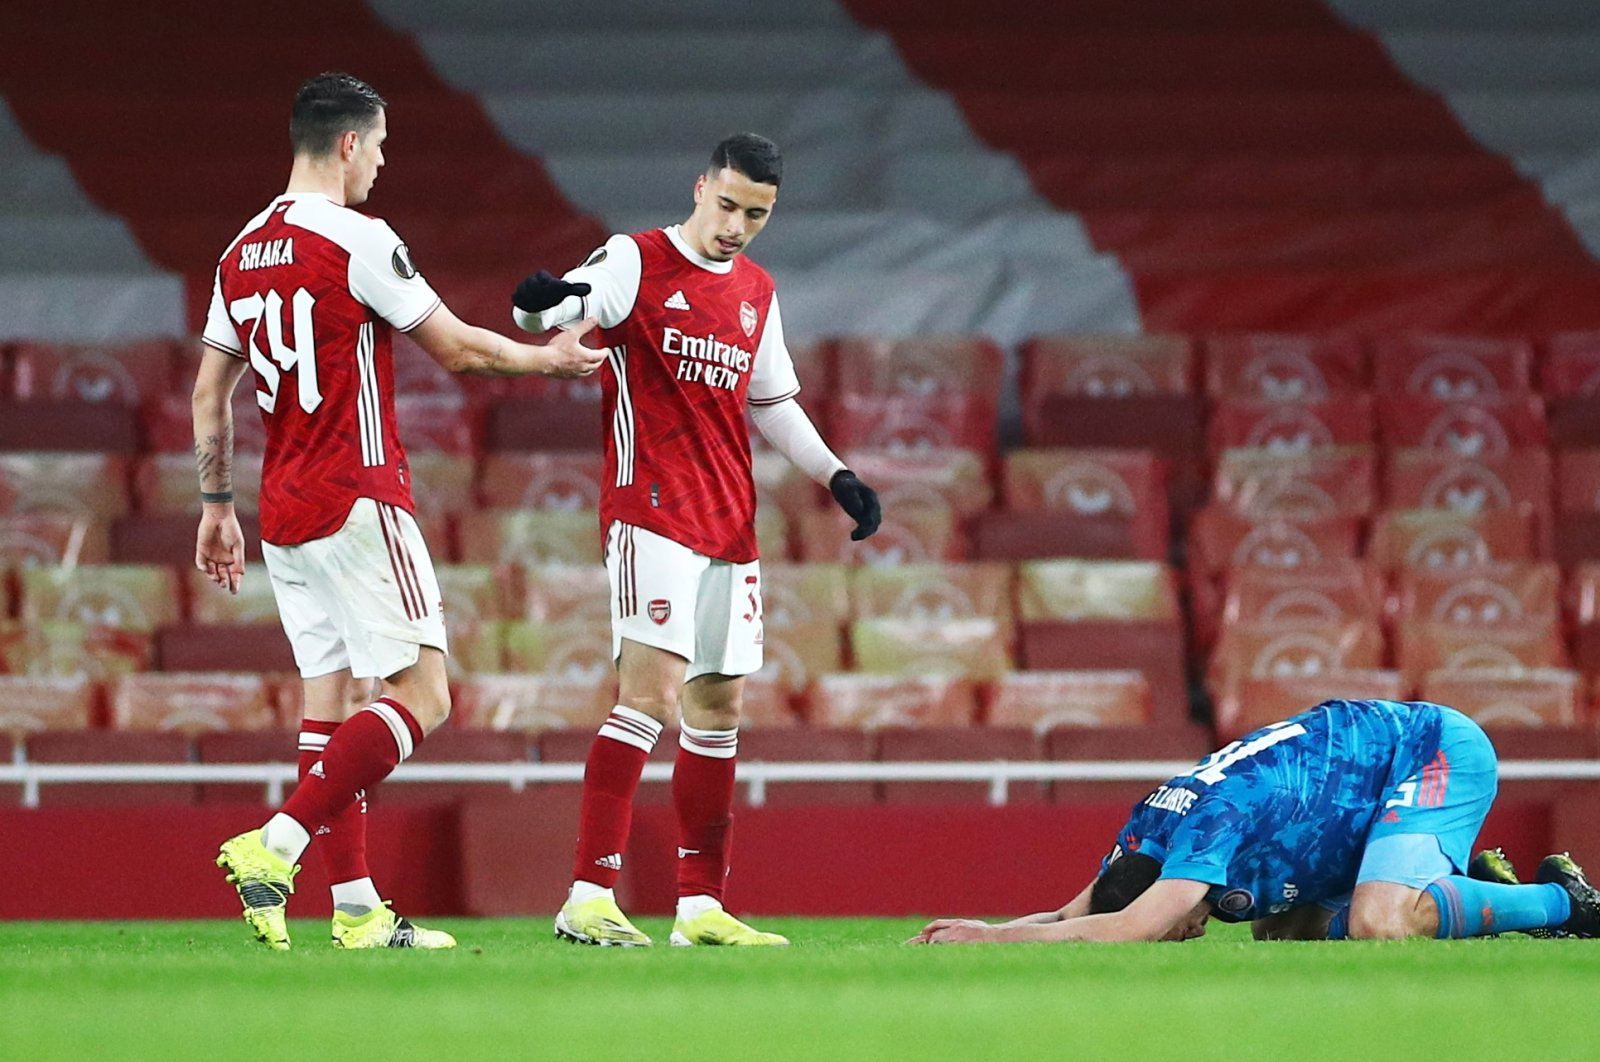 Arsenal's Gabriel Martinelli shakes hands with Granit Xhaka as Olympiacos' Sokratis Papastathopoulos looks dejected after the Europa League match at the Emirates Stadium, in London, Britain, March 18, 2021. (Reuters Photo)